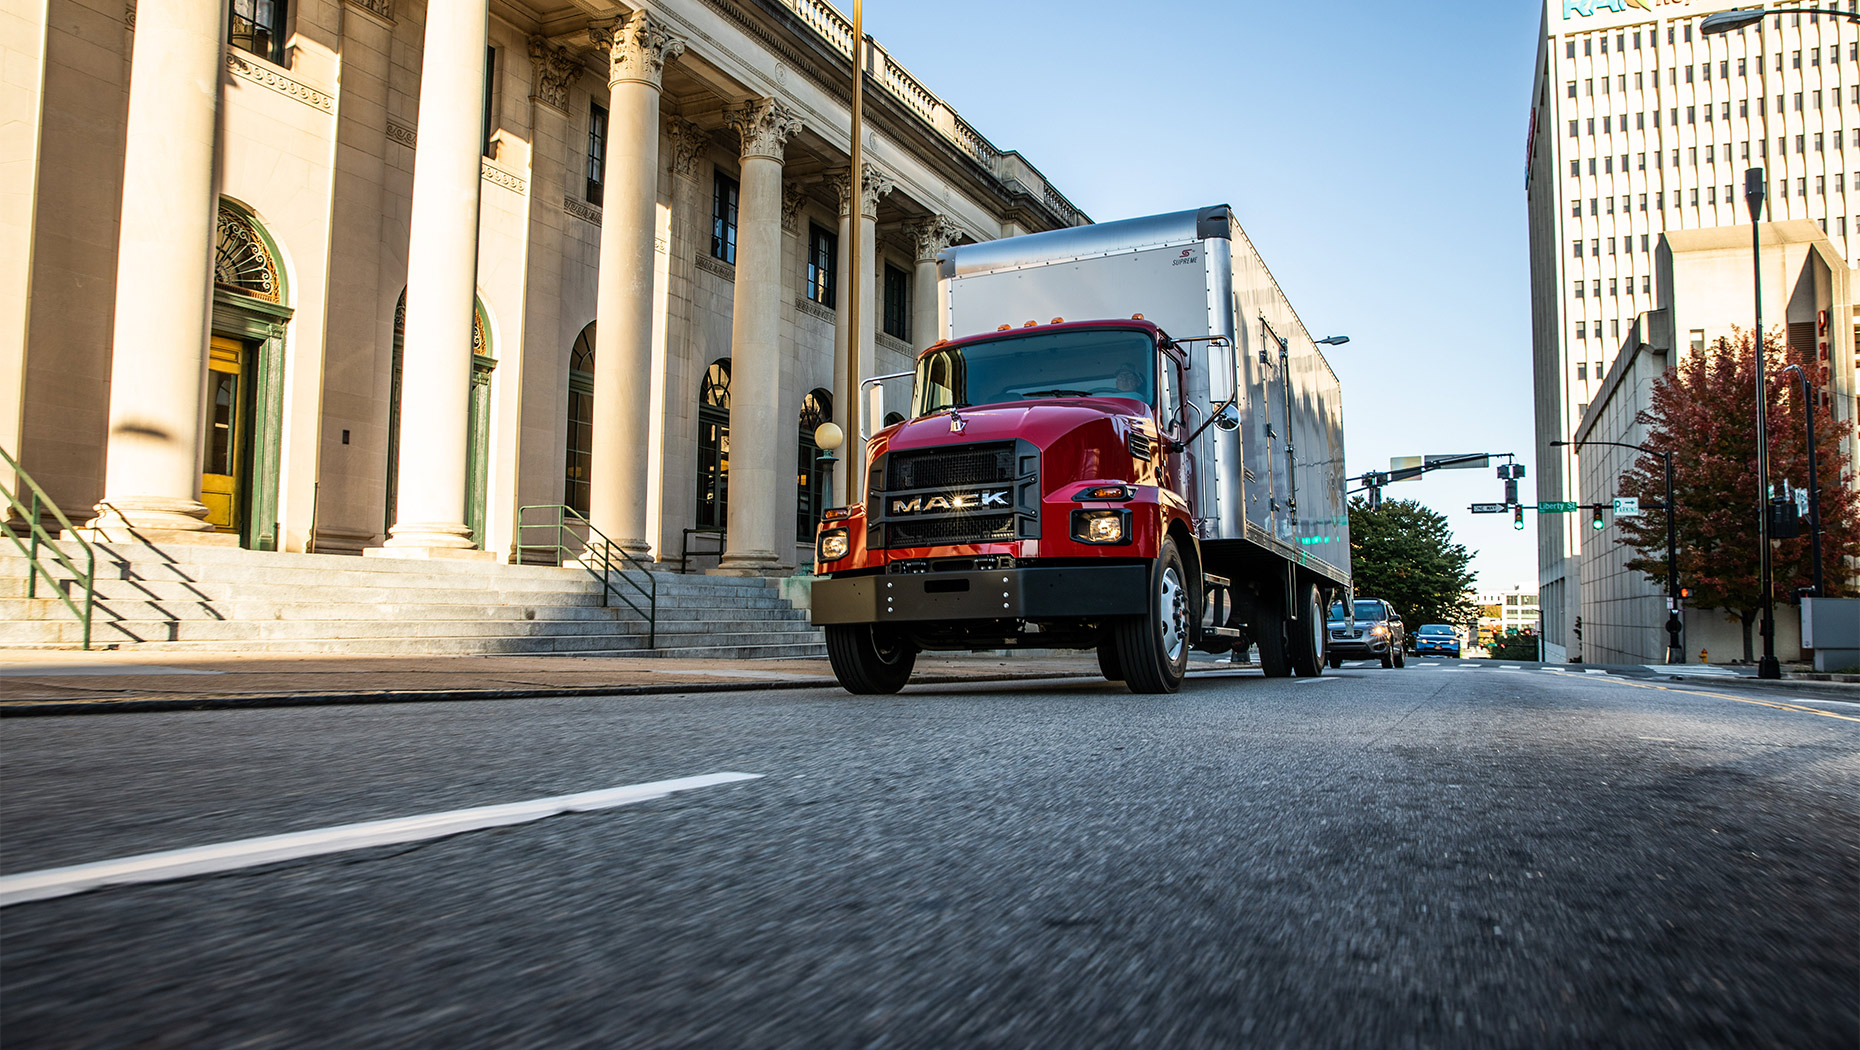 Mack Highlights Features, Benefits of Mack® MD Series for Customers during Virtual Event